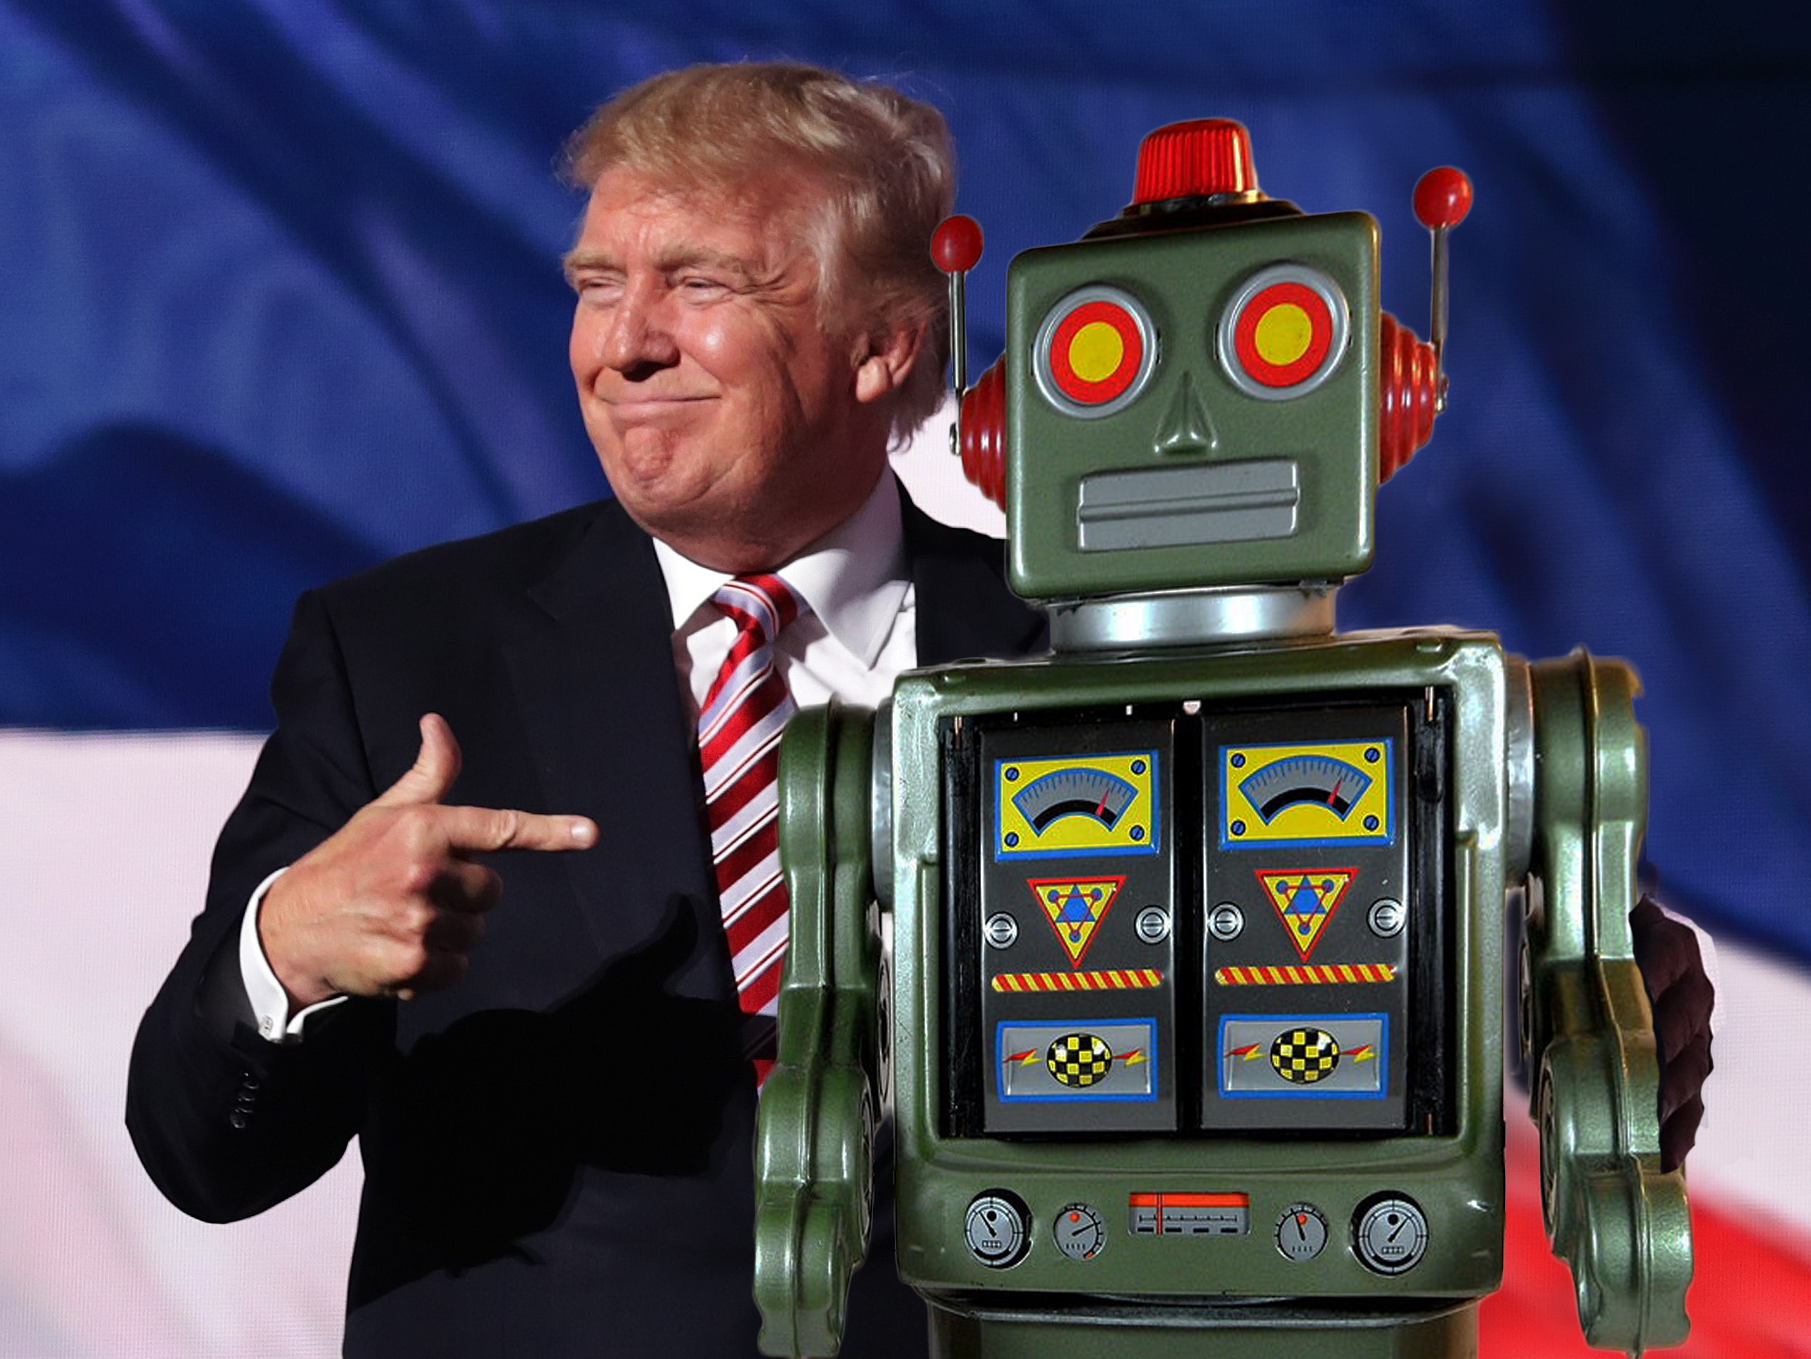 Trump Voters Don't Sweat Robot Outsourcing